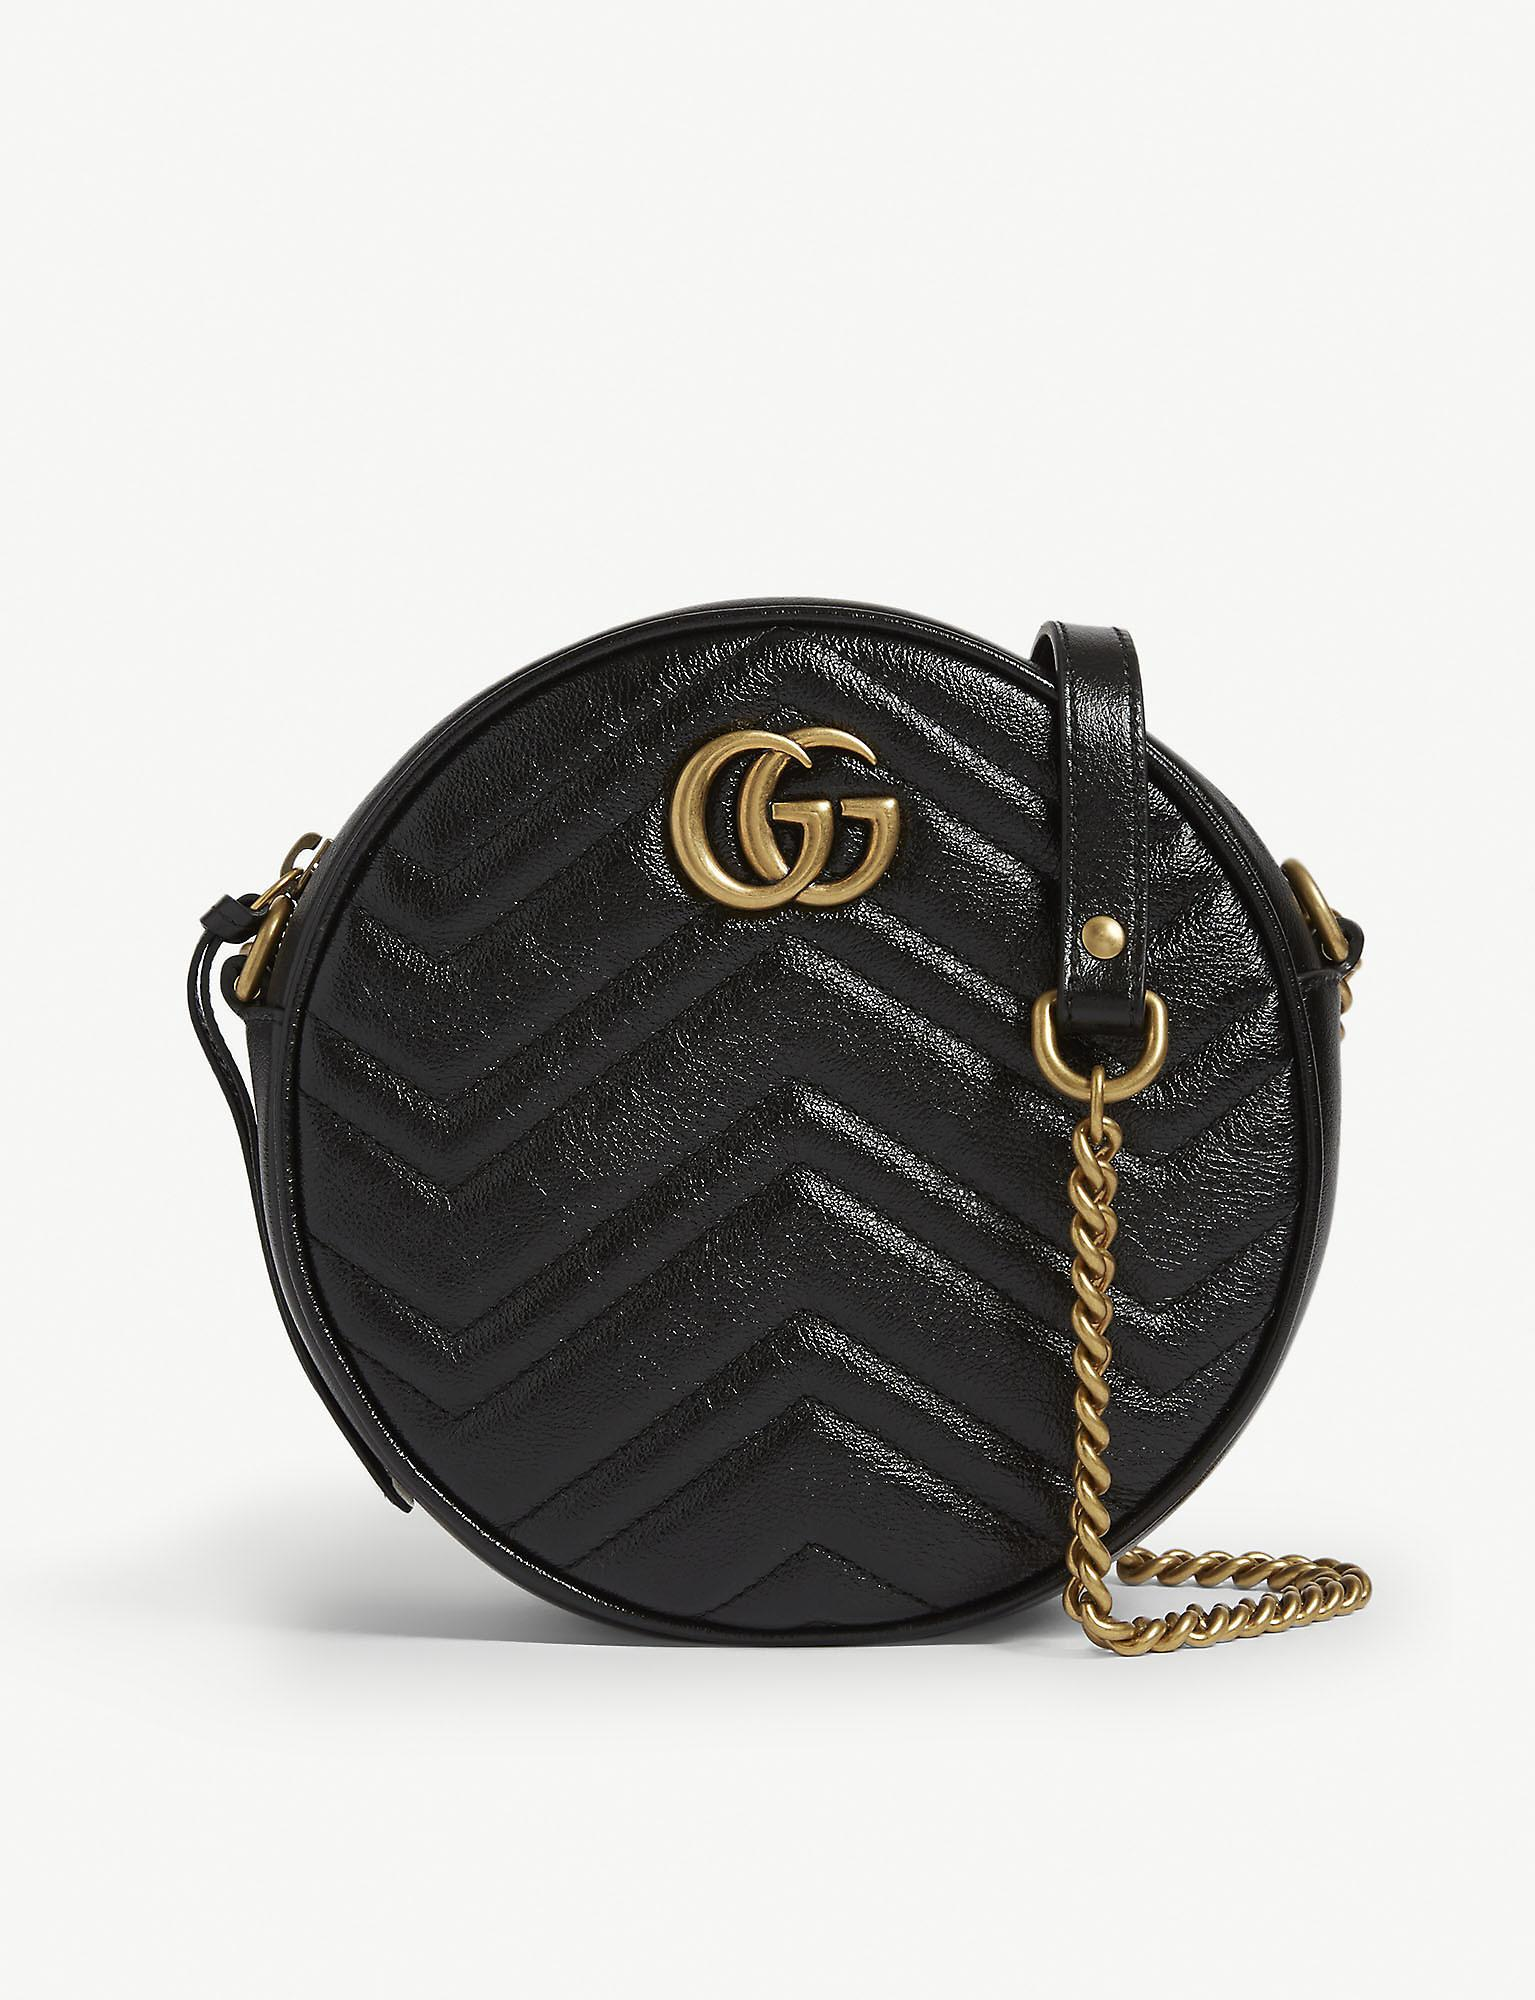 5dc6418441c2 Gucci Women's Black Zigzag Marmont Round Leather Quilted Camera Bag ...